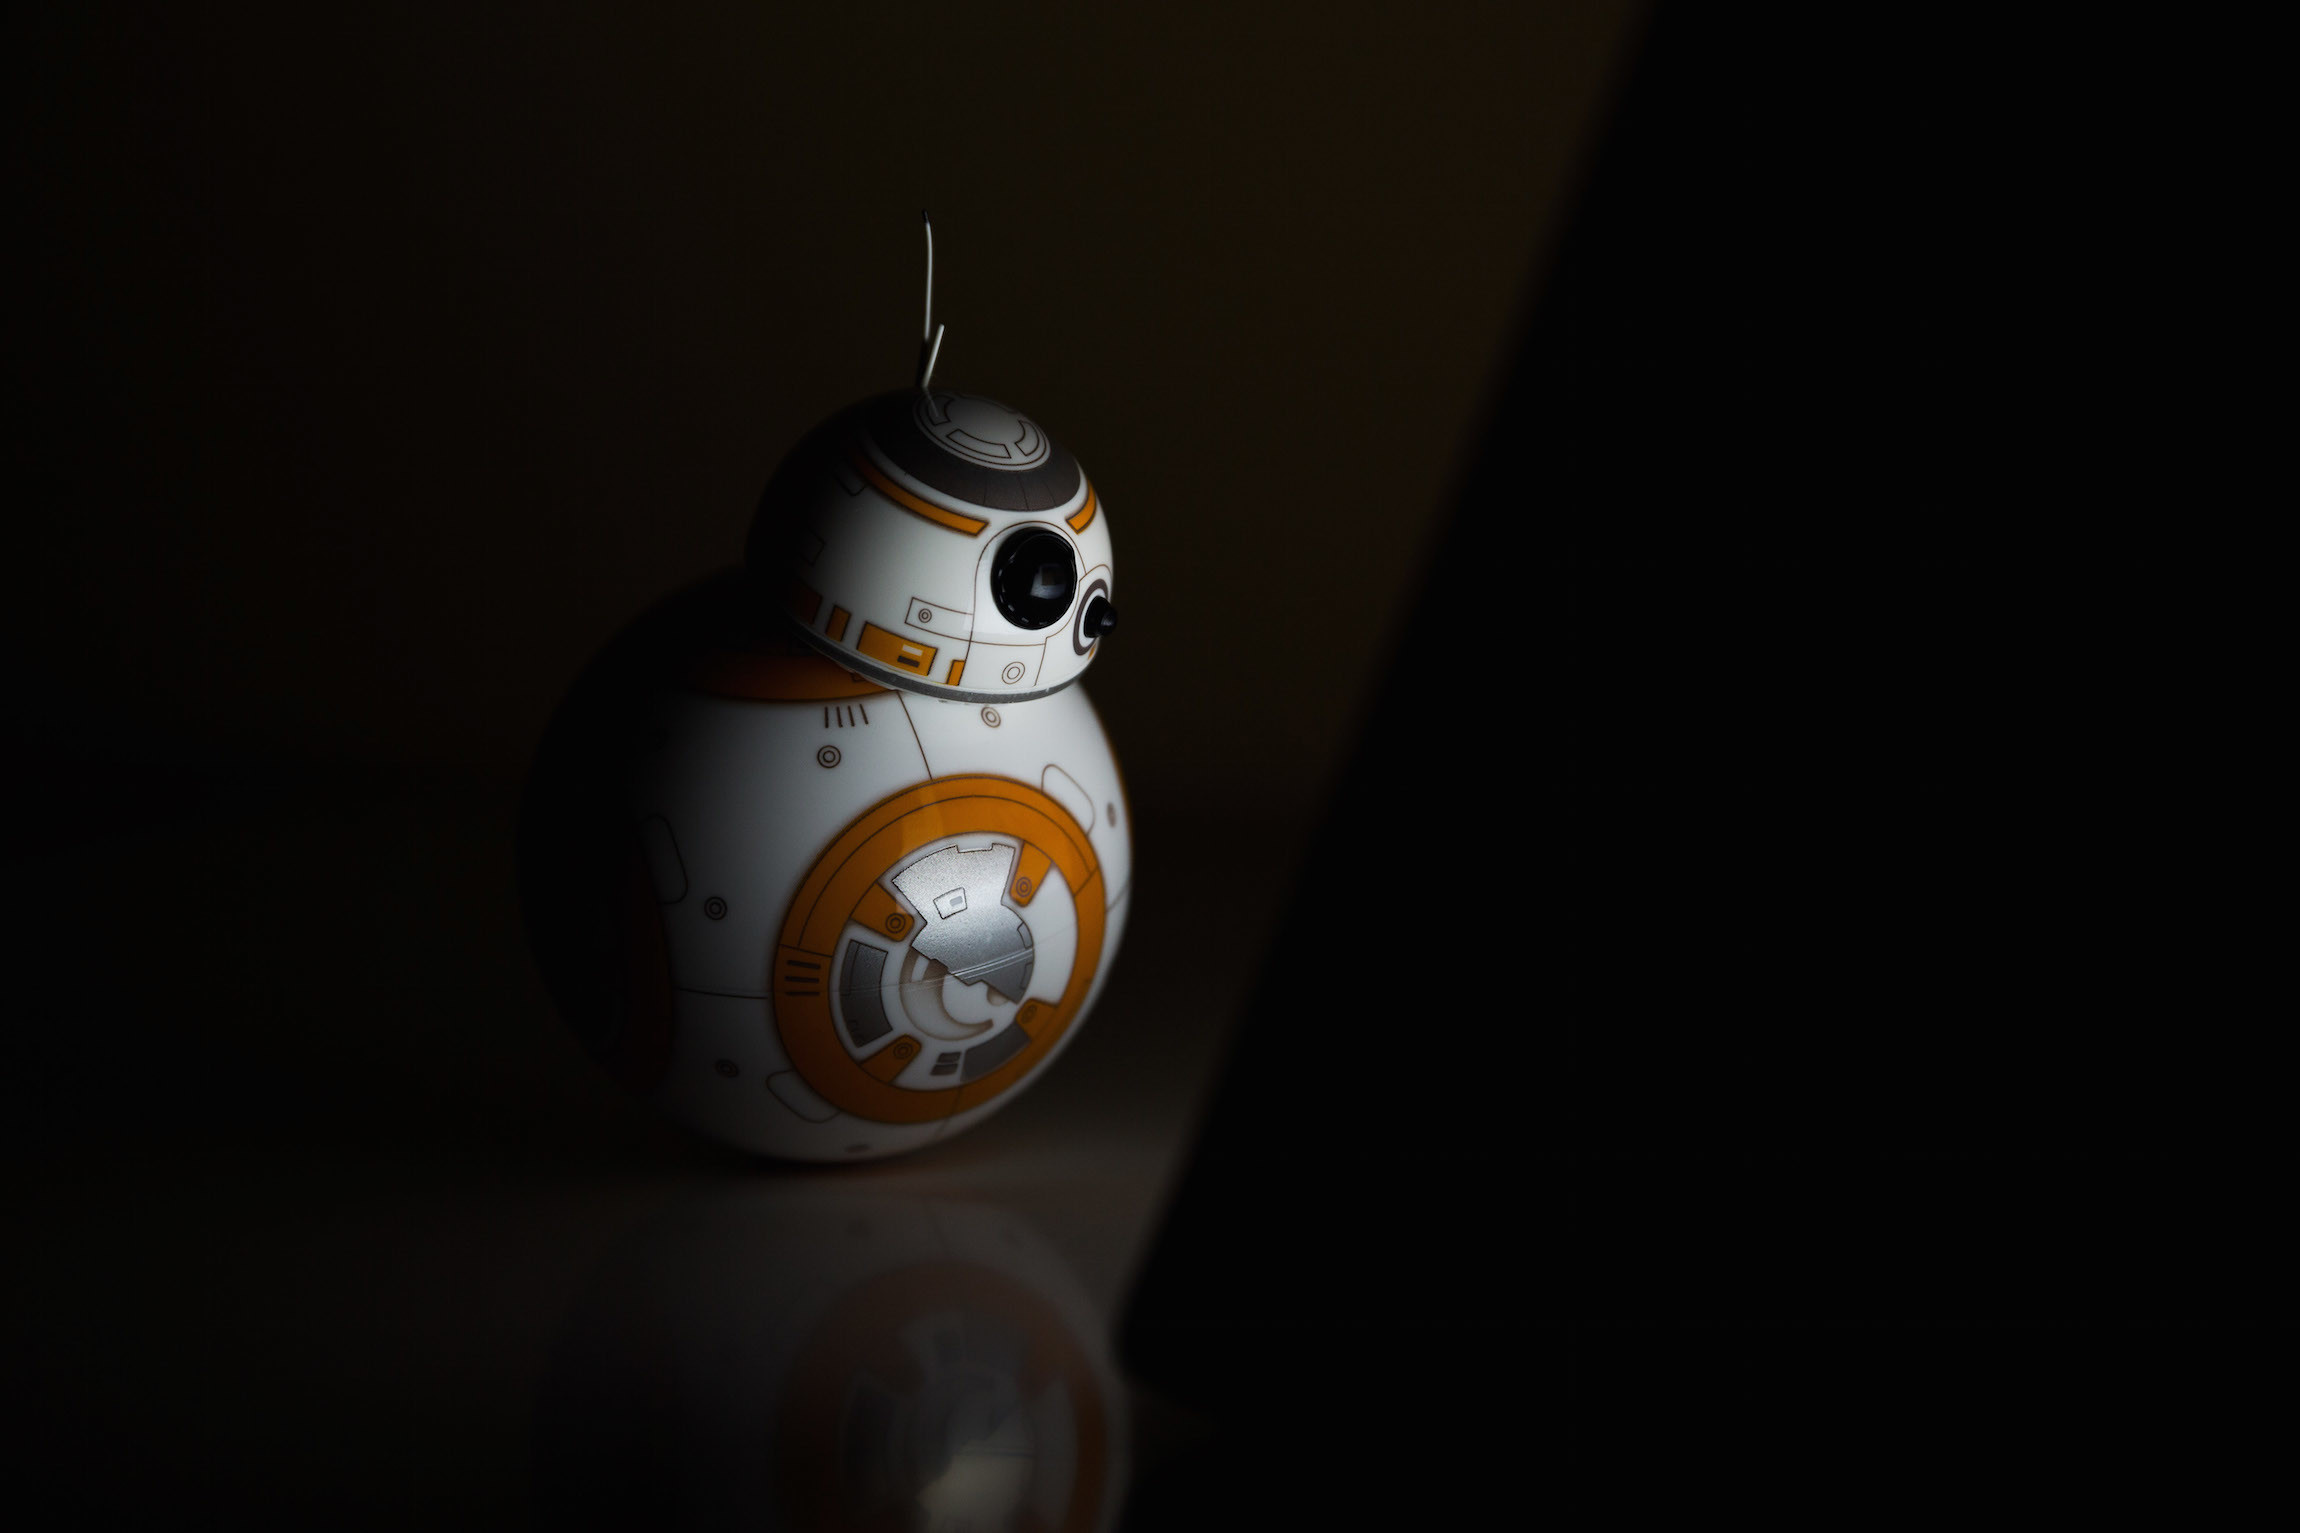 A Day in the Life of Sphero's BB-8   StarWars.com